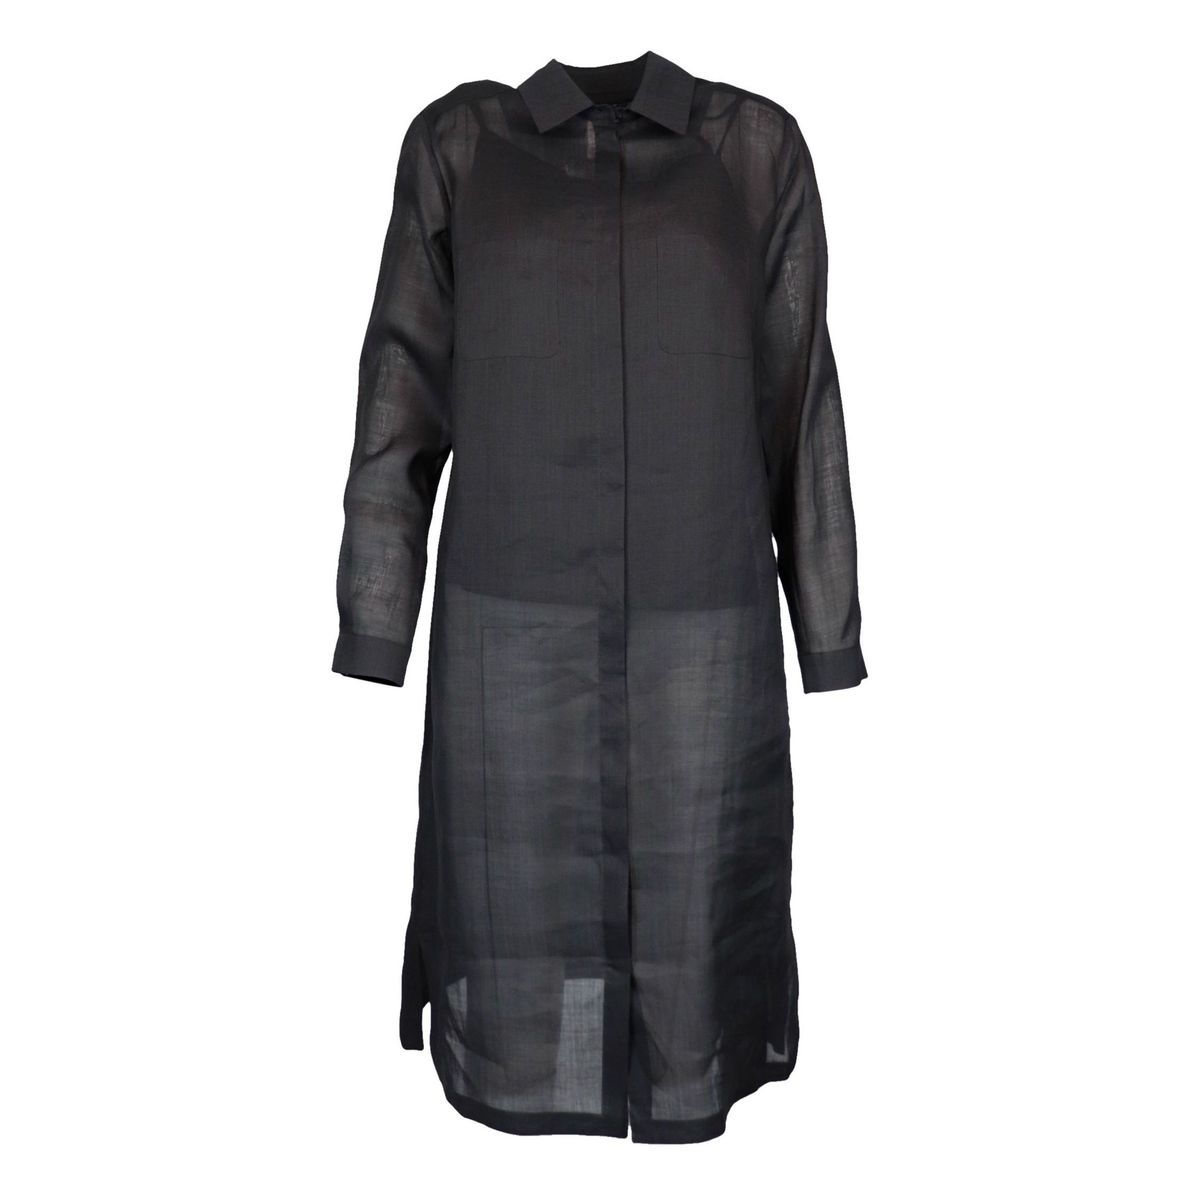 France chemisier dress in silk shantung with top Black MAX MARA STUDIO